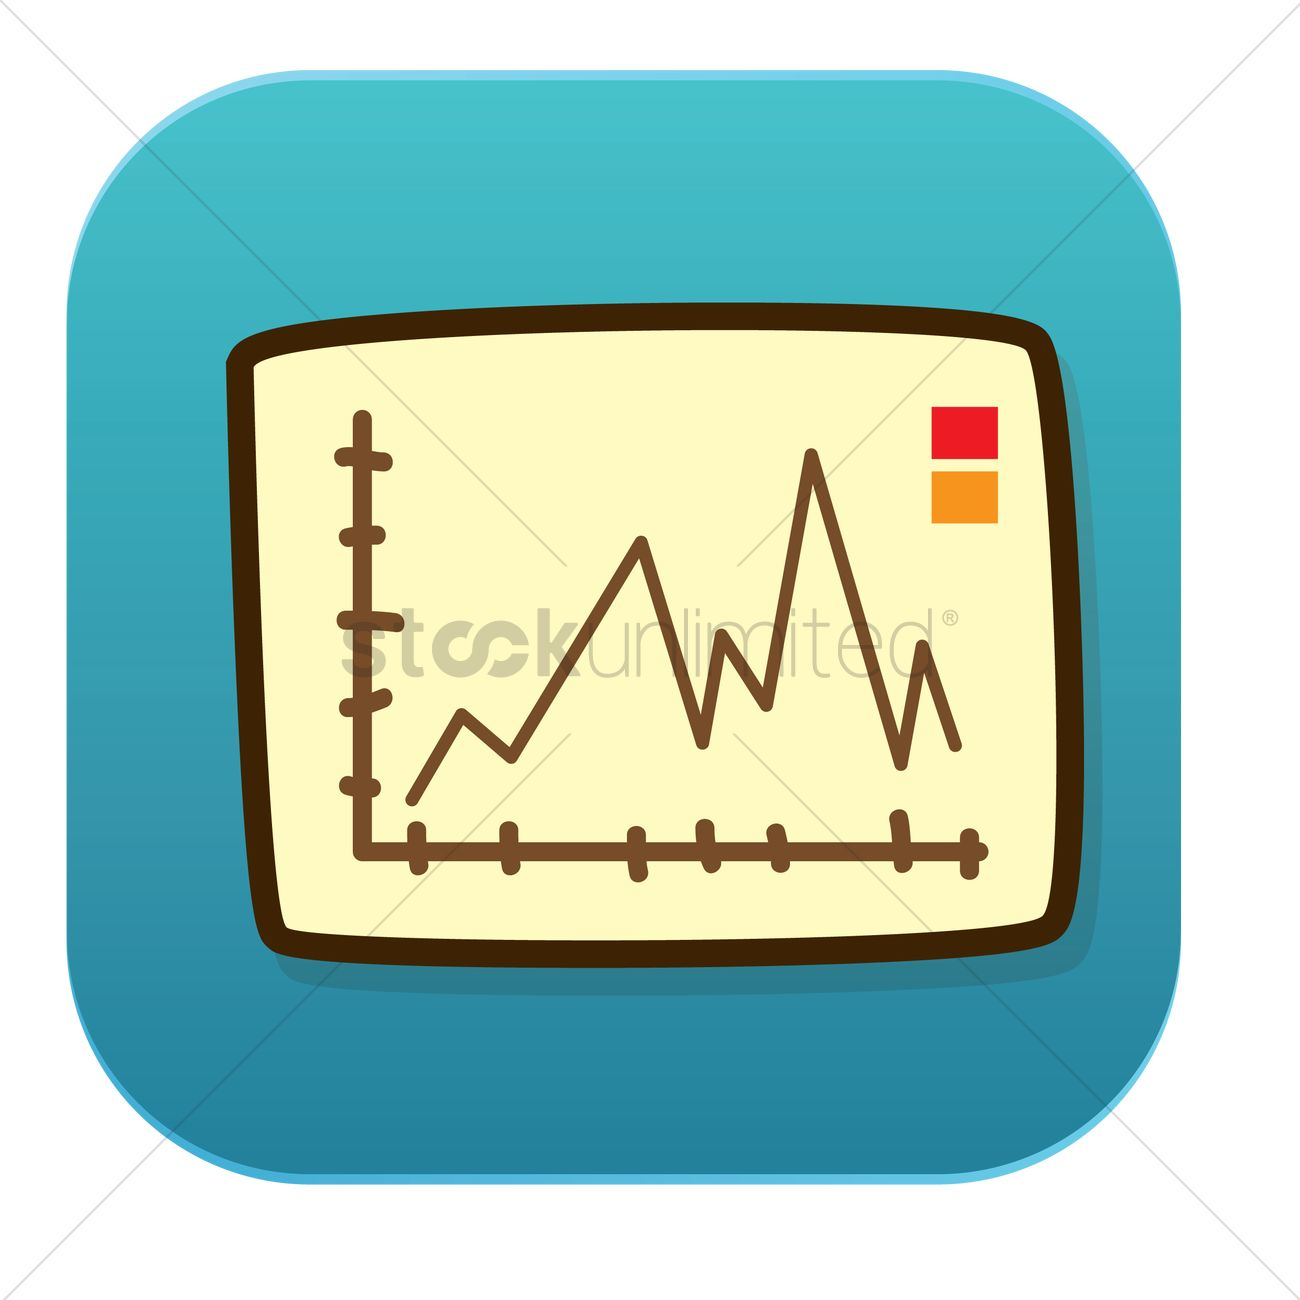 line graph vector image - 1241506 | stockunlimited